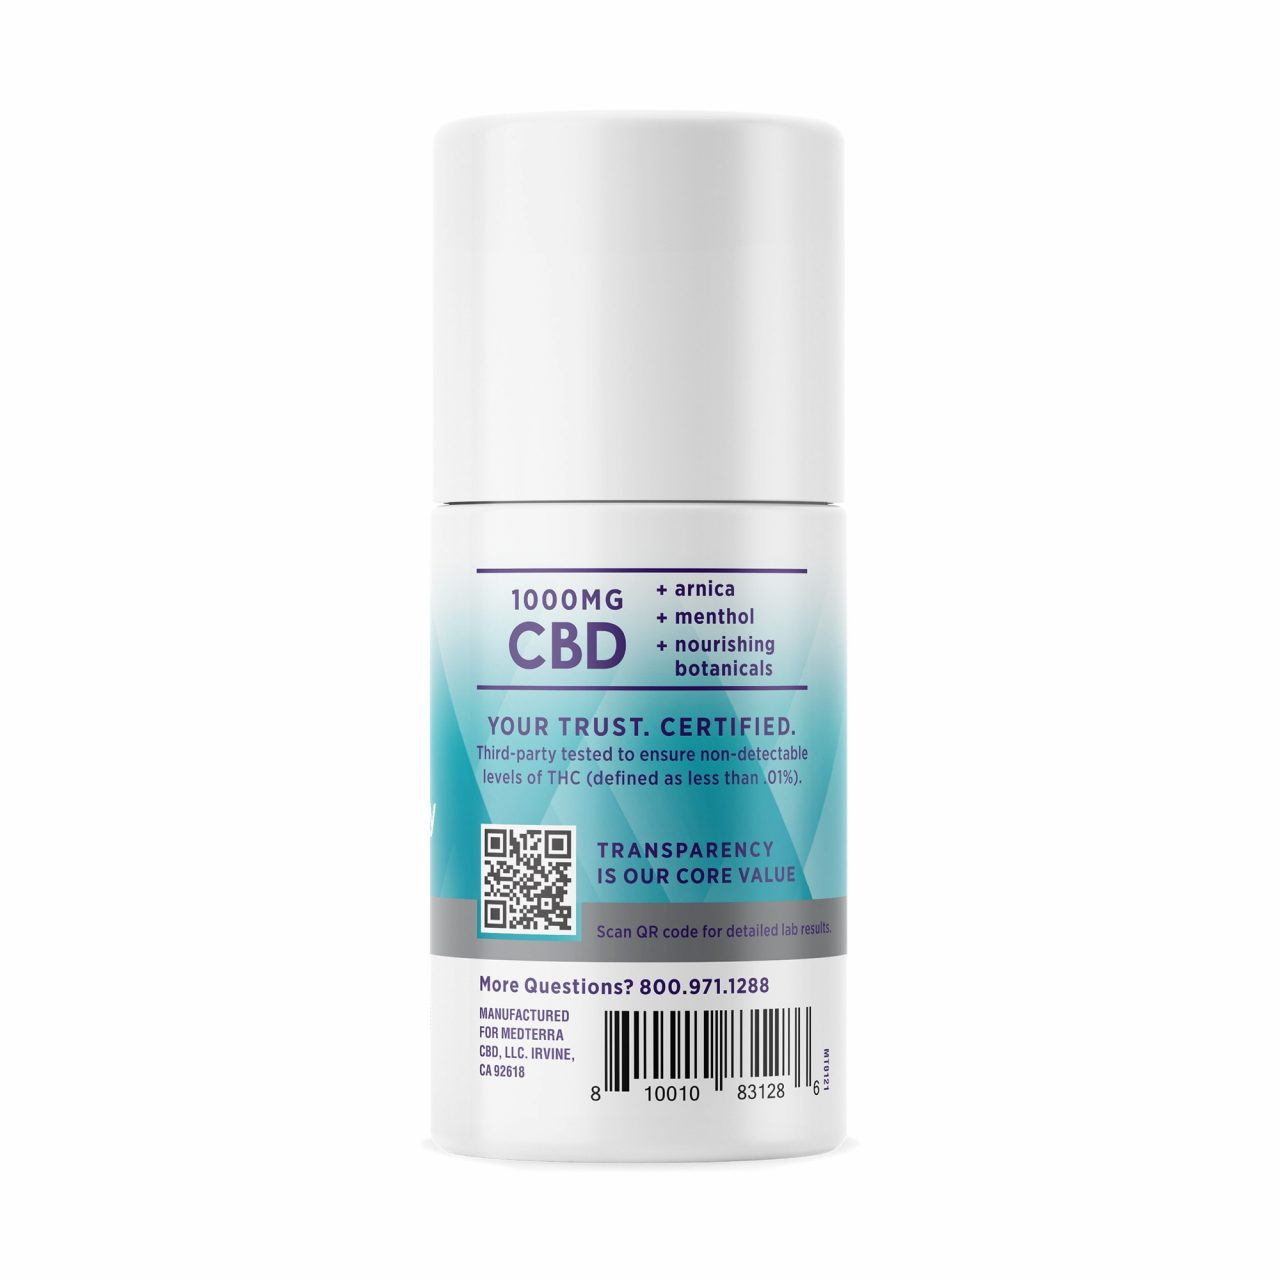 Medterra, Relief + Recovery CBD Roll On, Isolate THC-Free, 2oz, 1000mg CBD 3